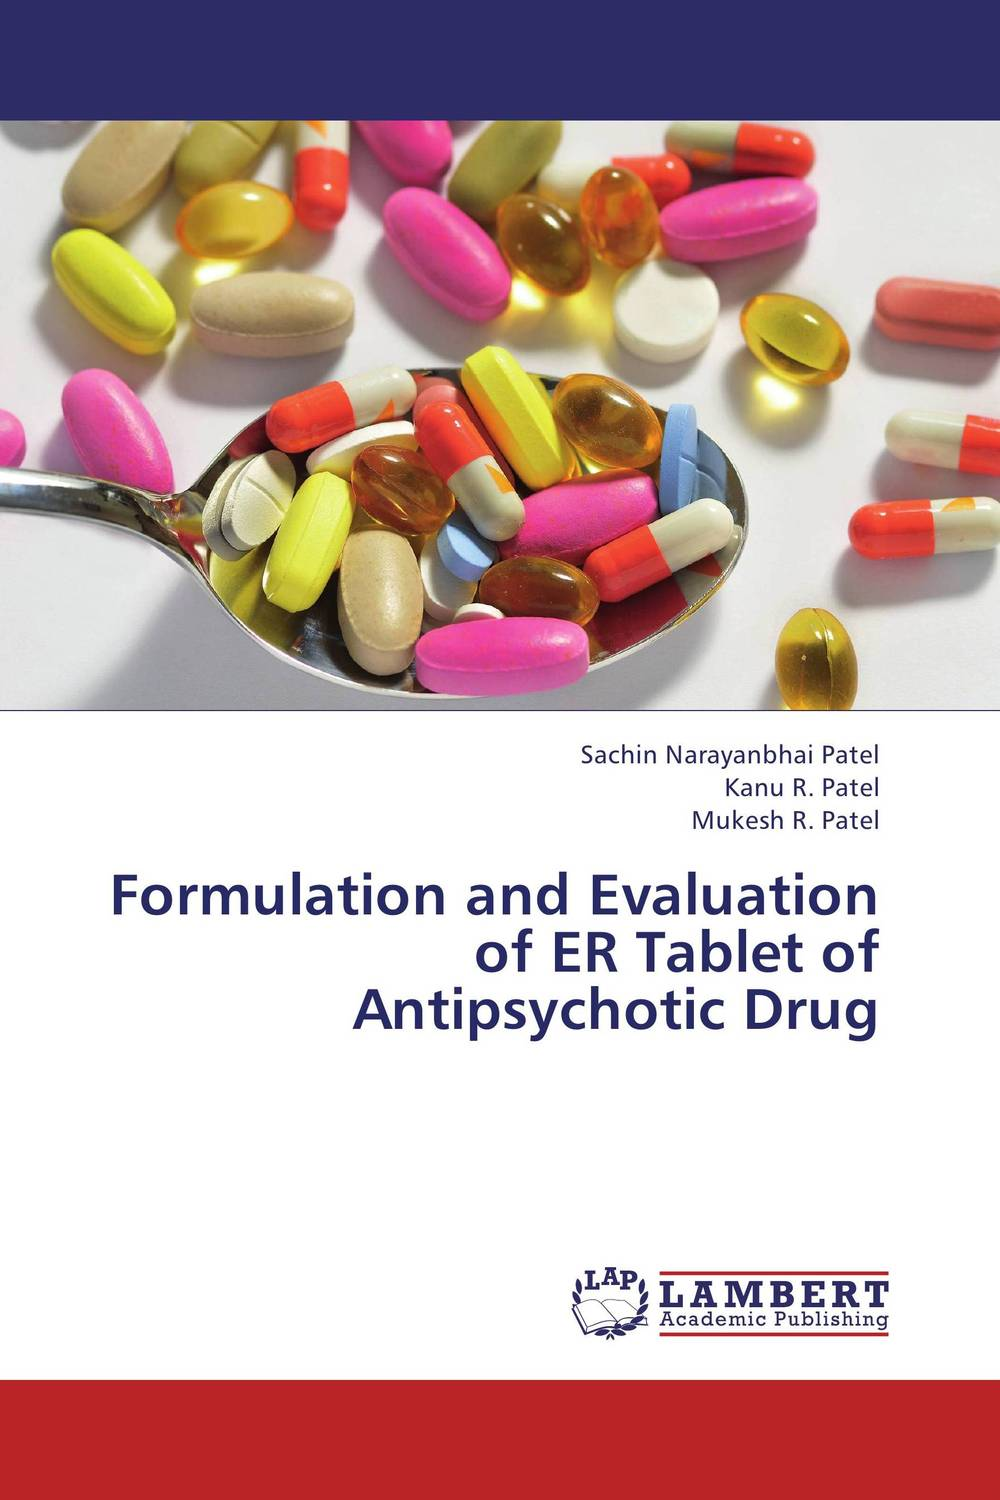 Formulation and Evaluation of ER Tablet of Antipsychotic Drug amita yadav kamal singh rathore and geeta m patel formulation evaluation and optimization of mouth dissolving tablets